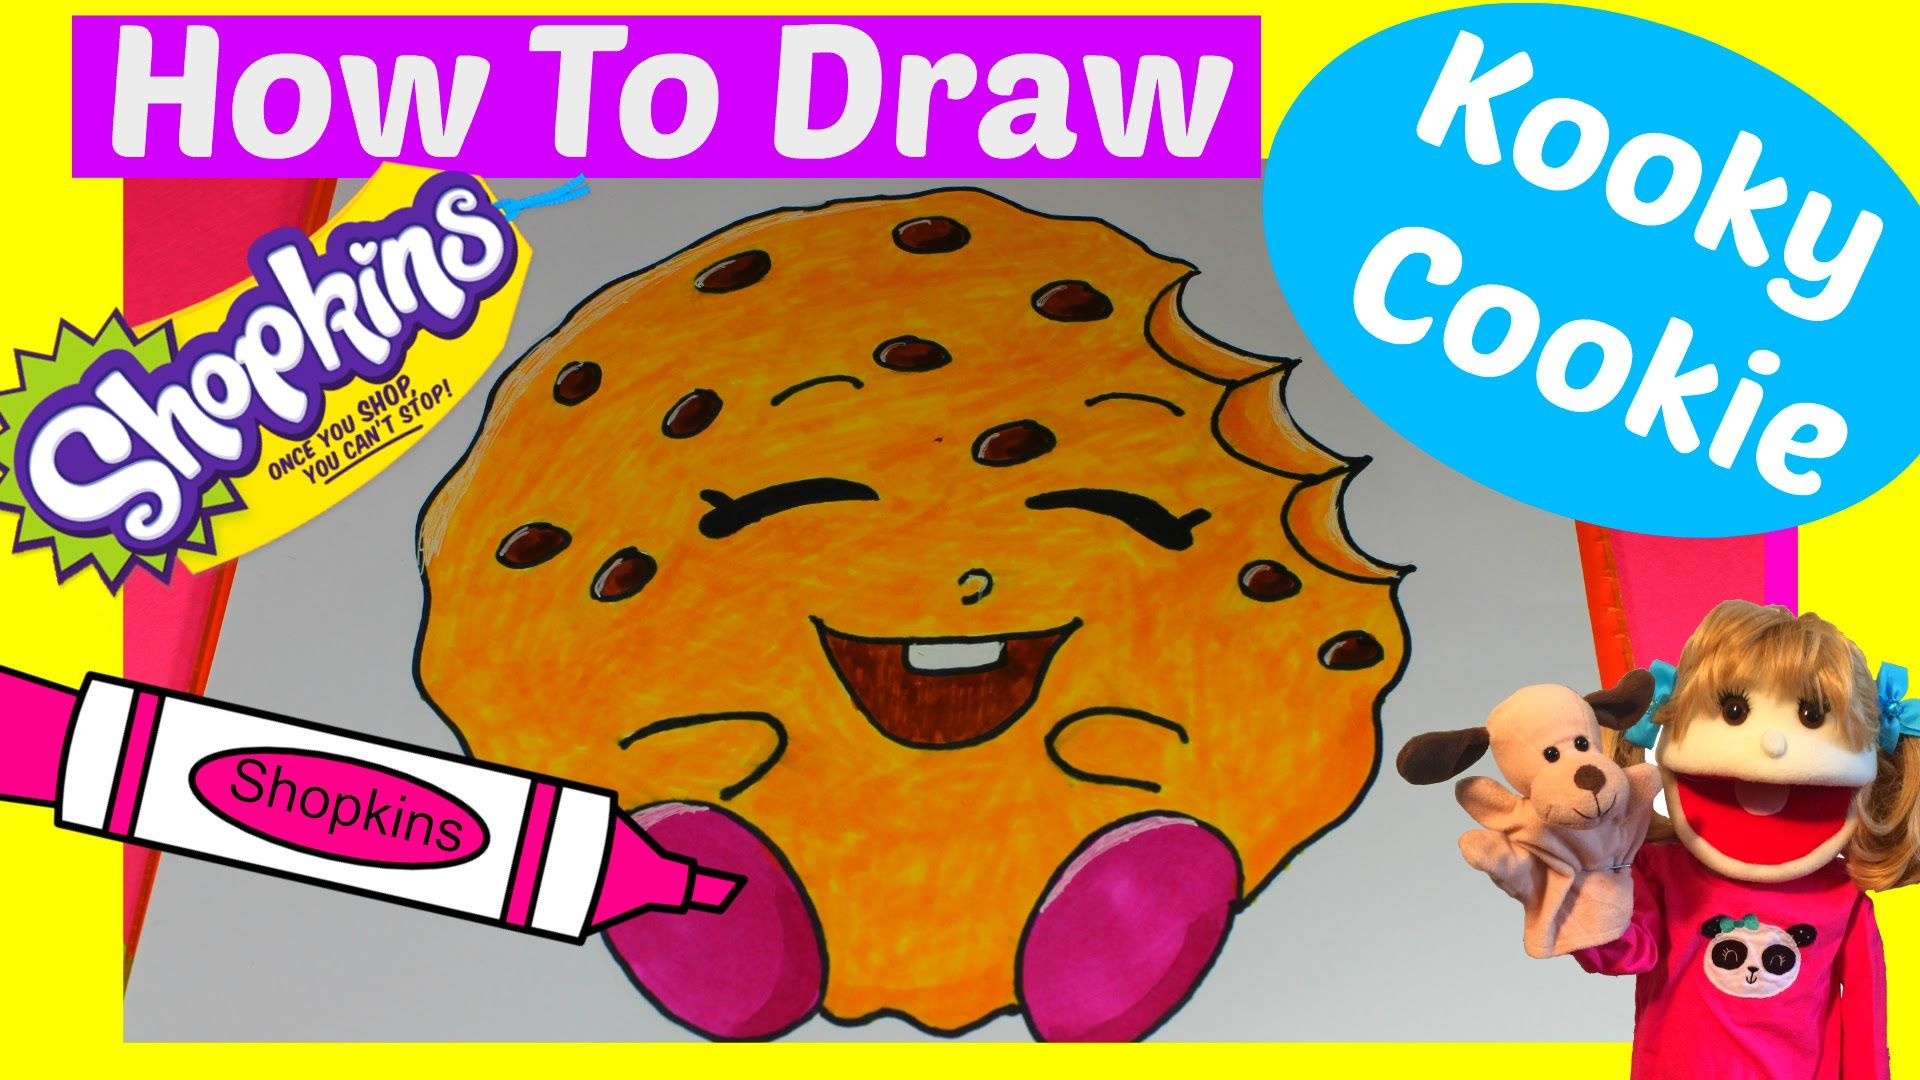 How to draw shopkins kooky cookie step by step easy with jazzy puppet